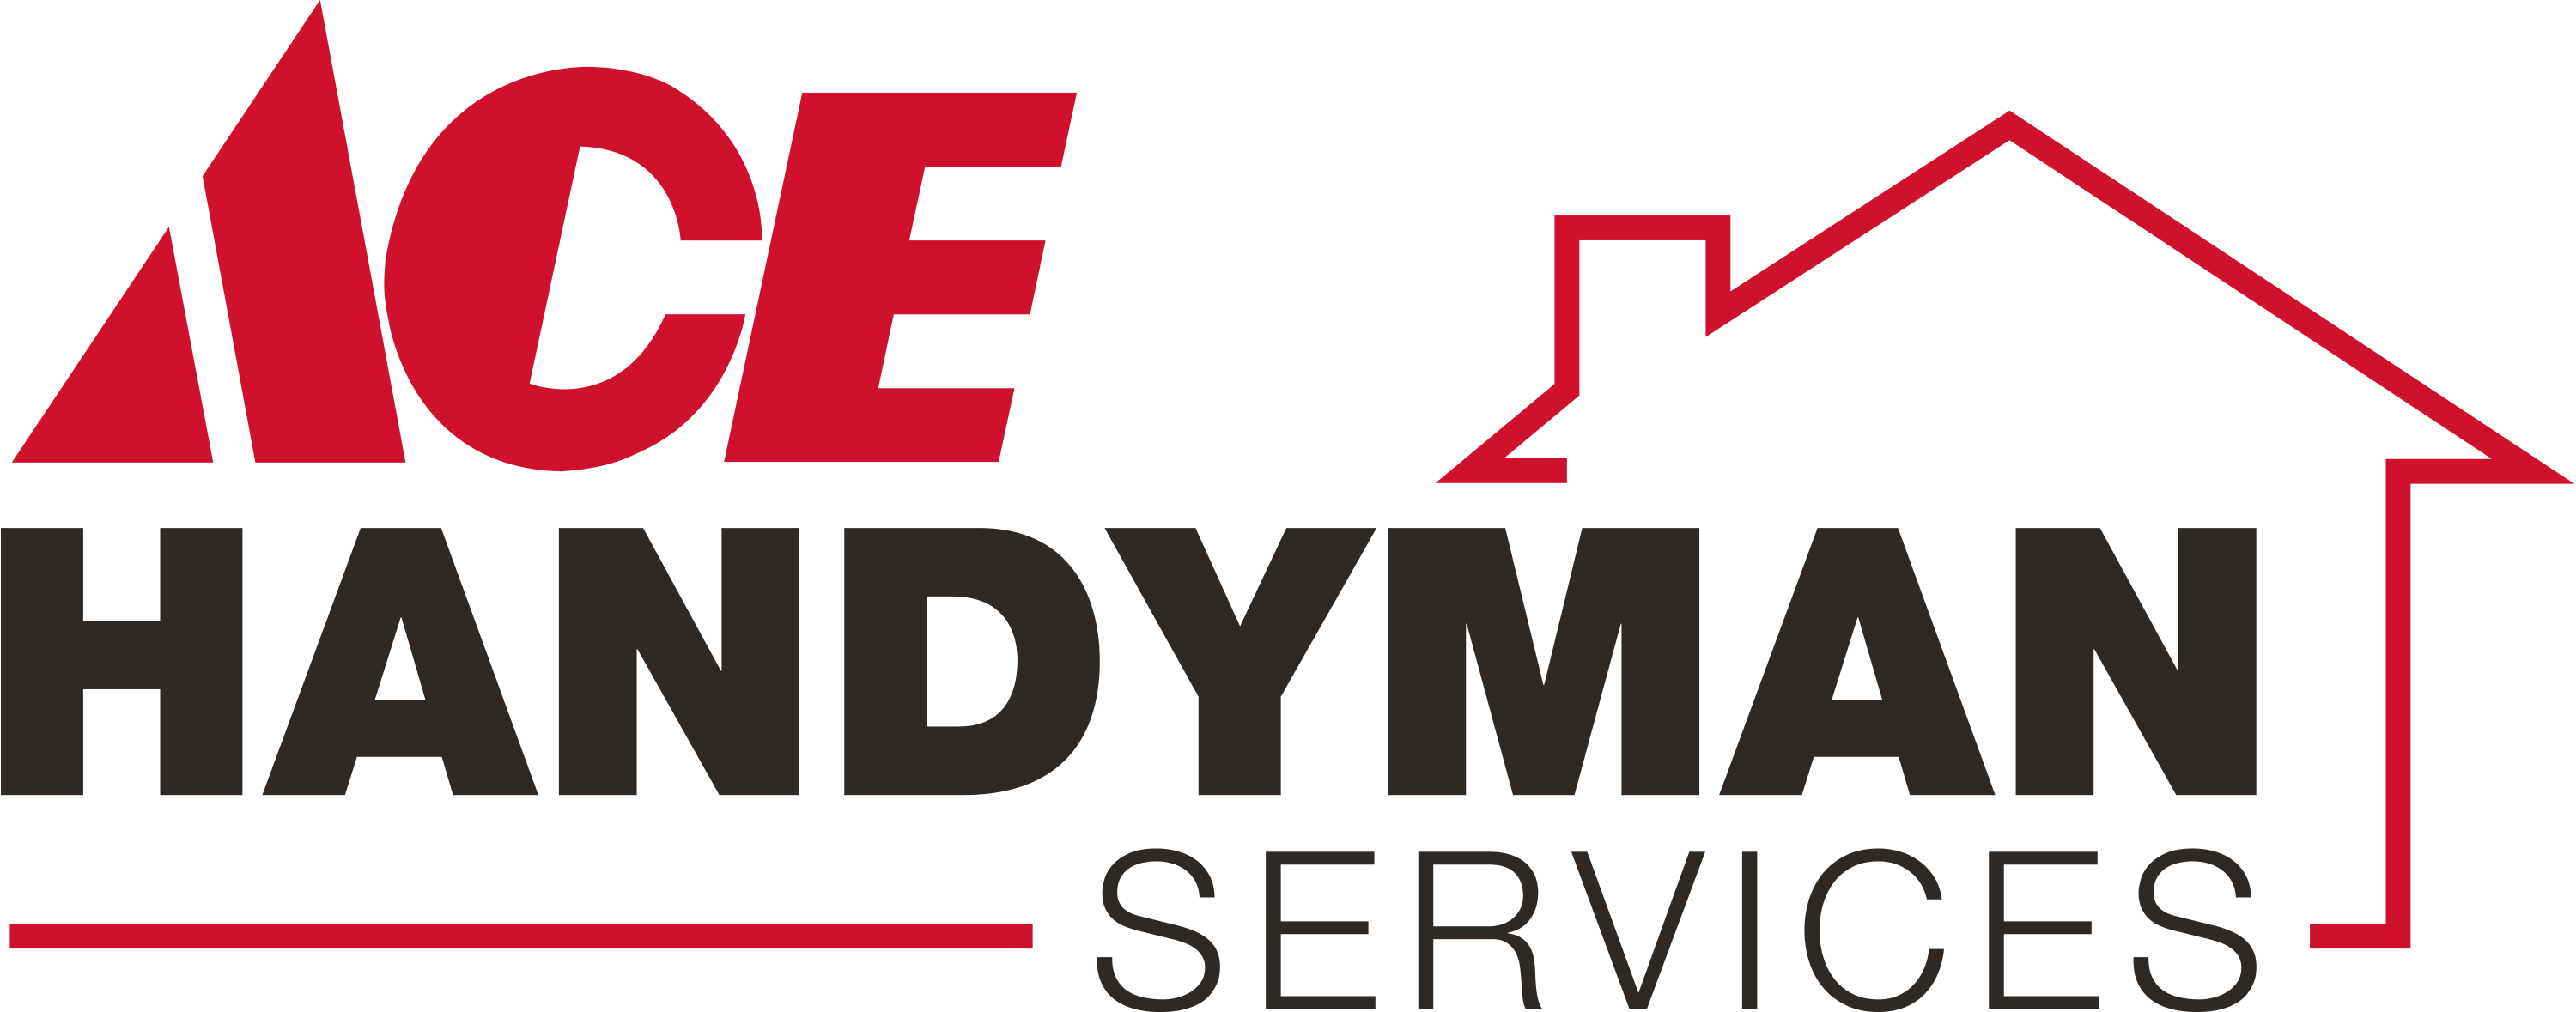 ACE HANDYMAN SERVICES ROCKVILLE logo